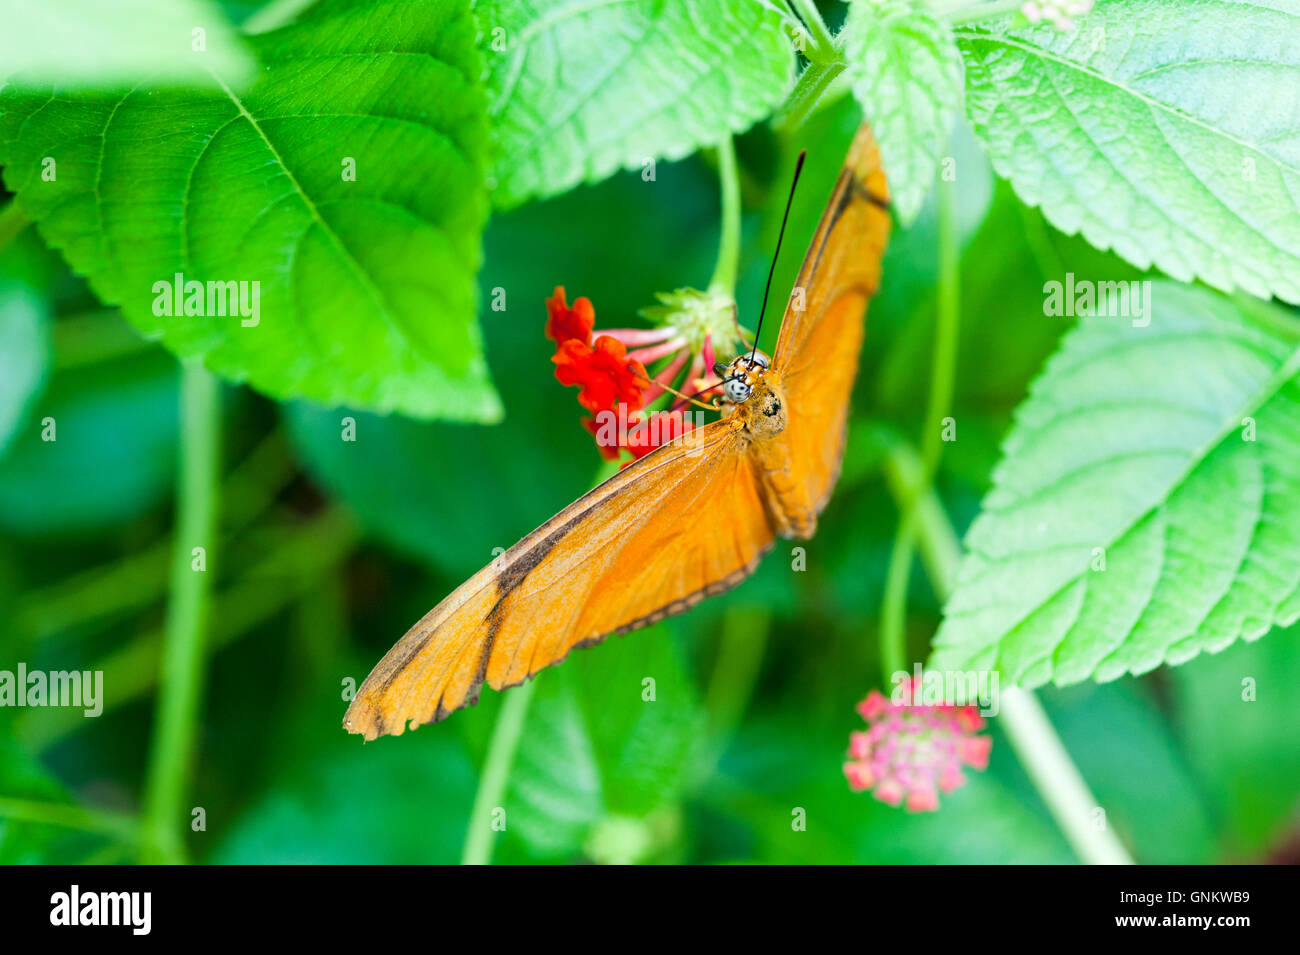 Orange Julia Heliconian or Dryas iulia butterfly, a species of brush-footed butterfly, perched on a flower - Stock Image